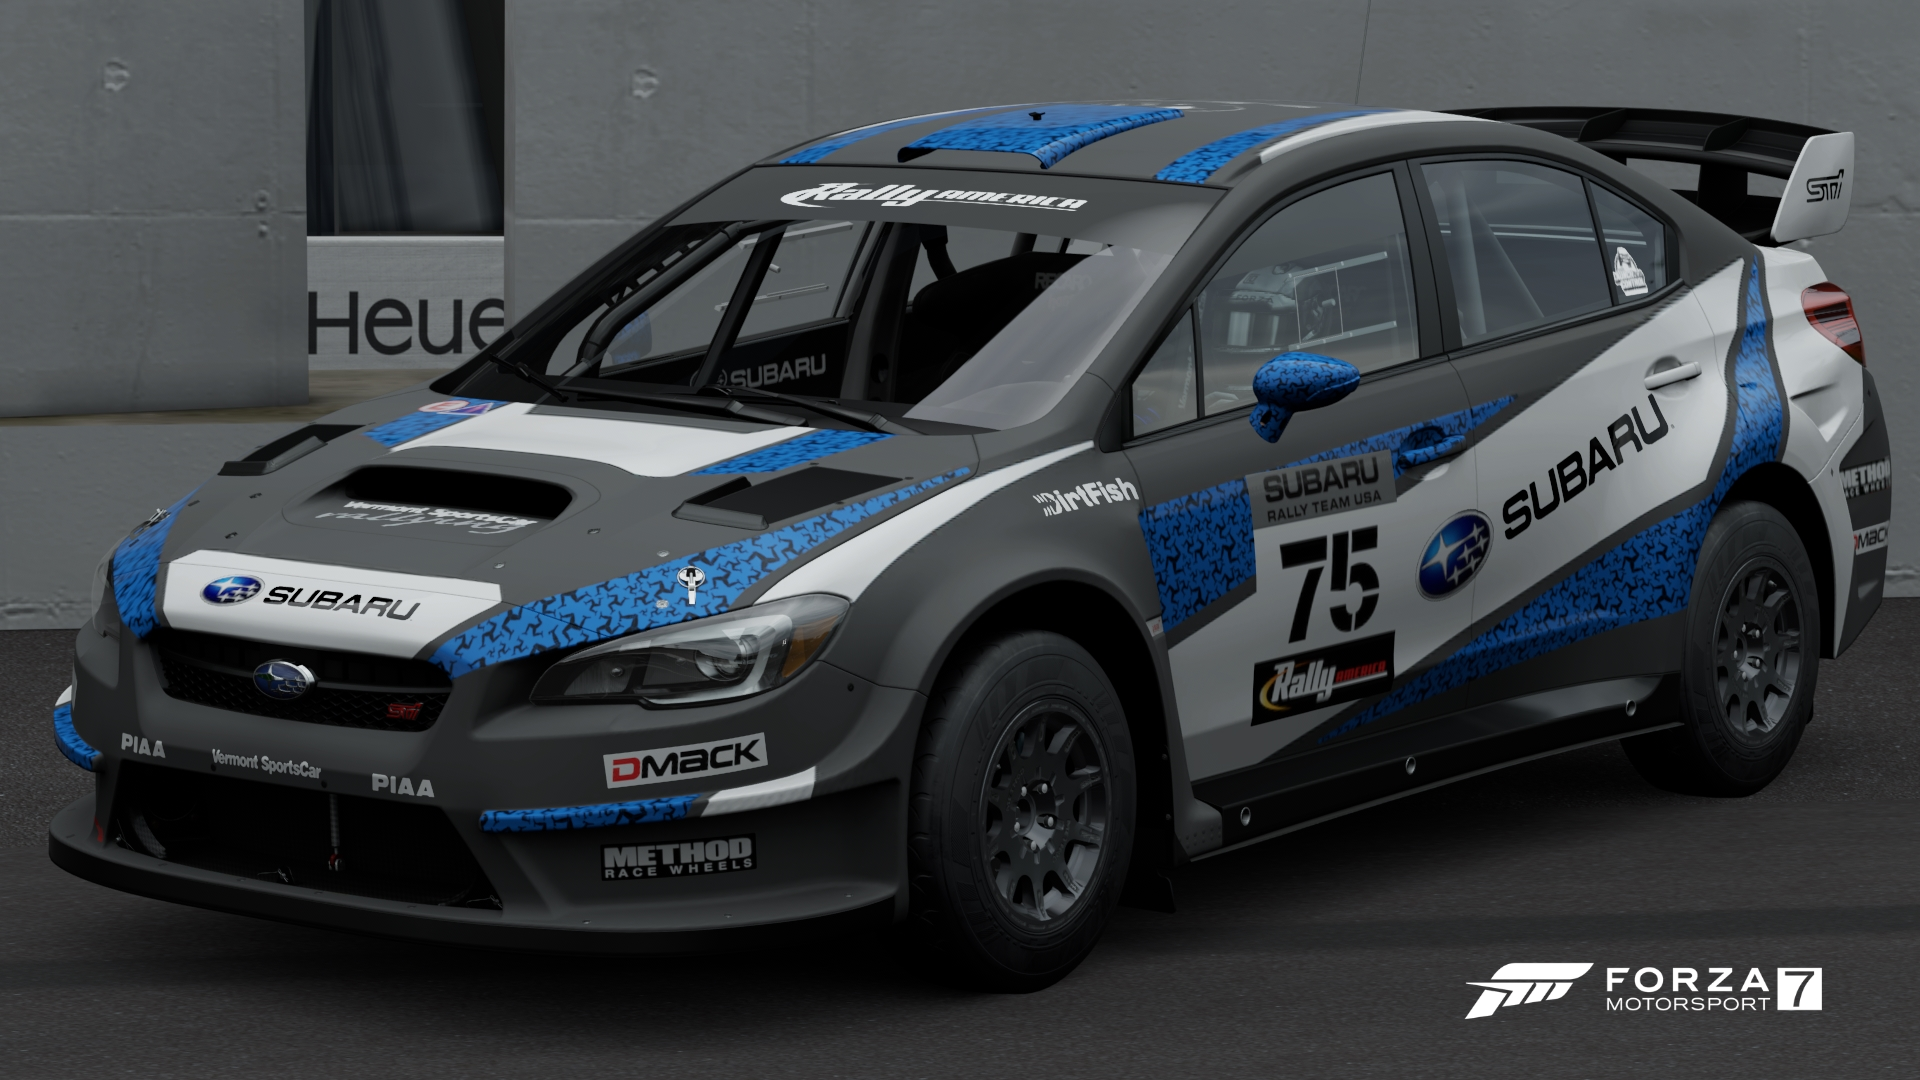 The 2016 Subaru #75 WRX STI VT15R Rally Car In Forza Motorsport 7